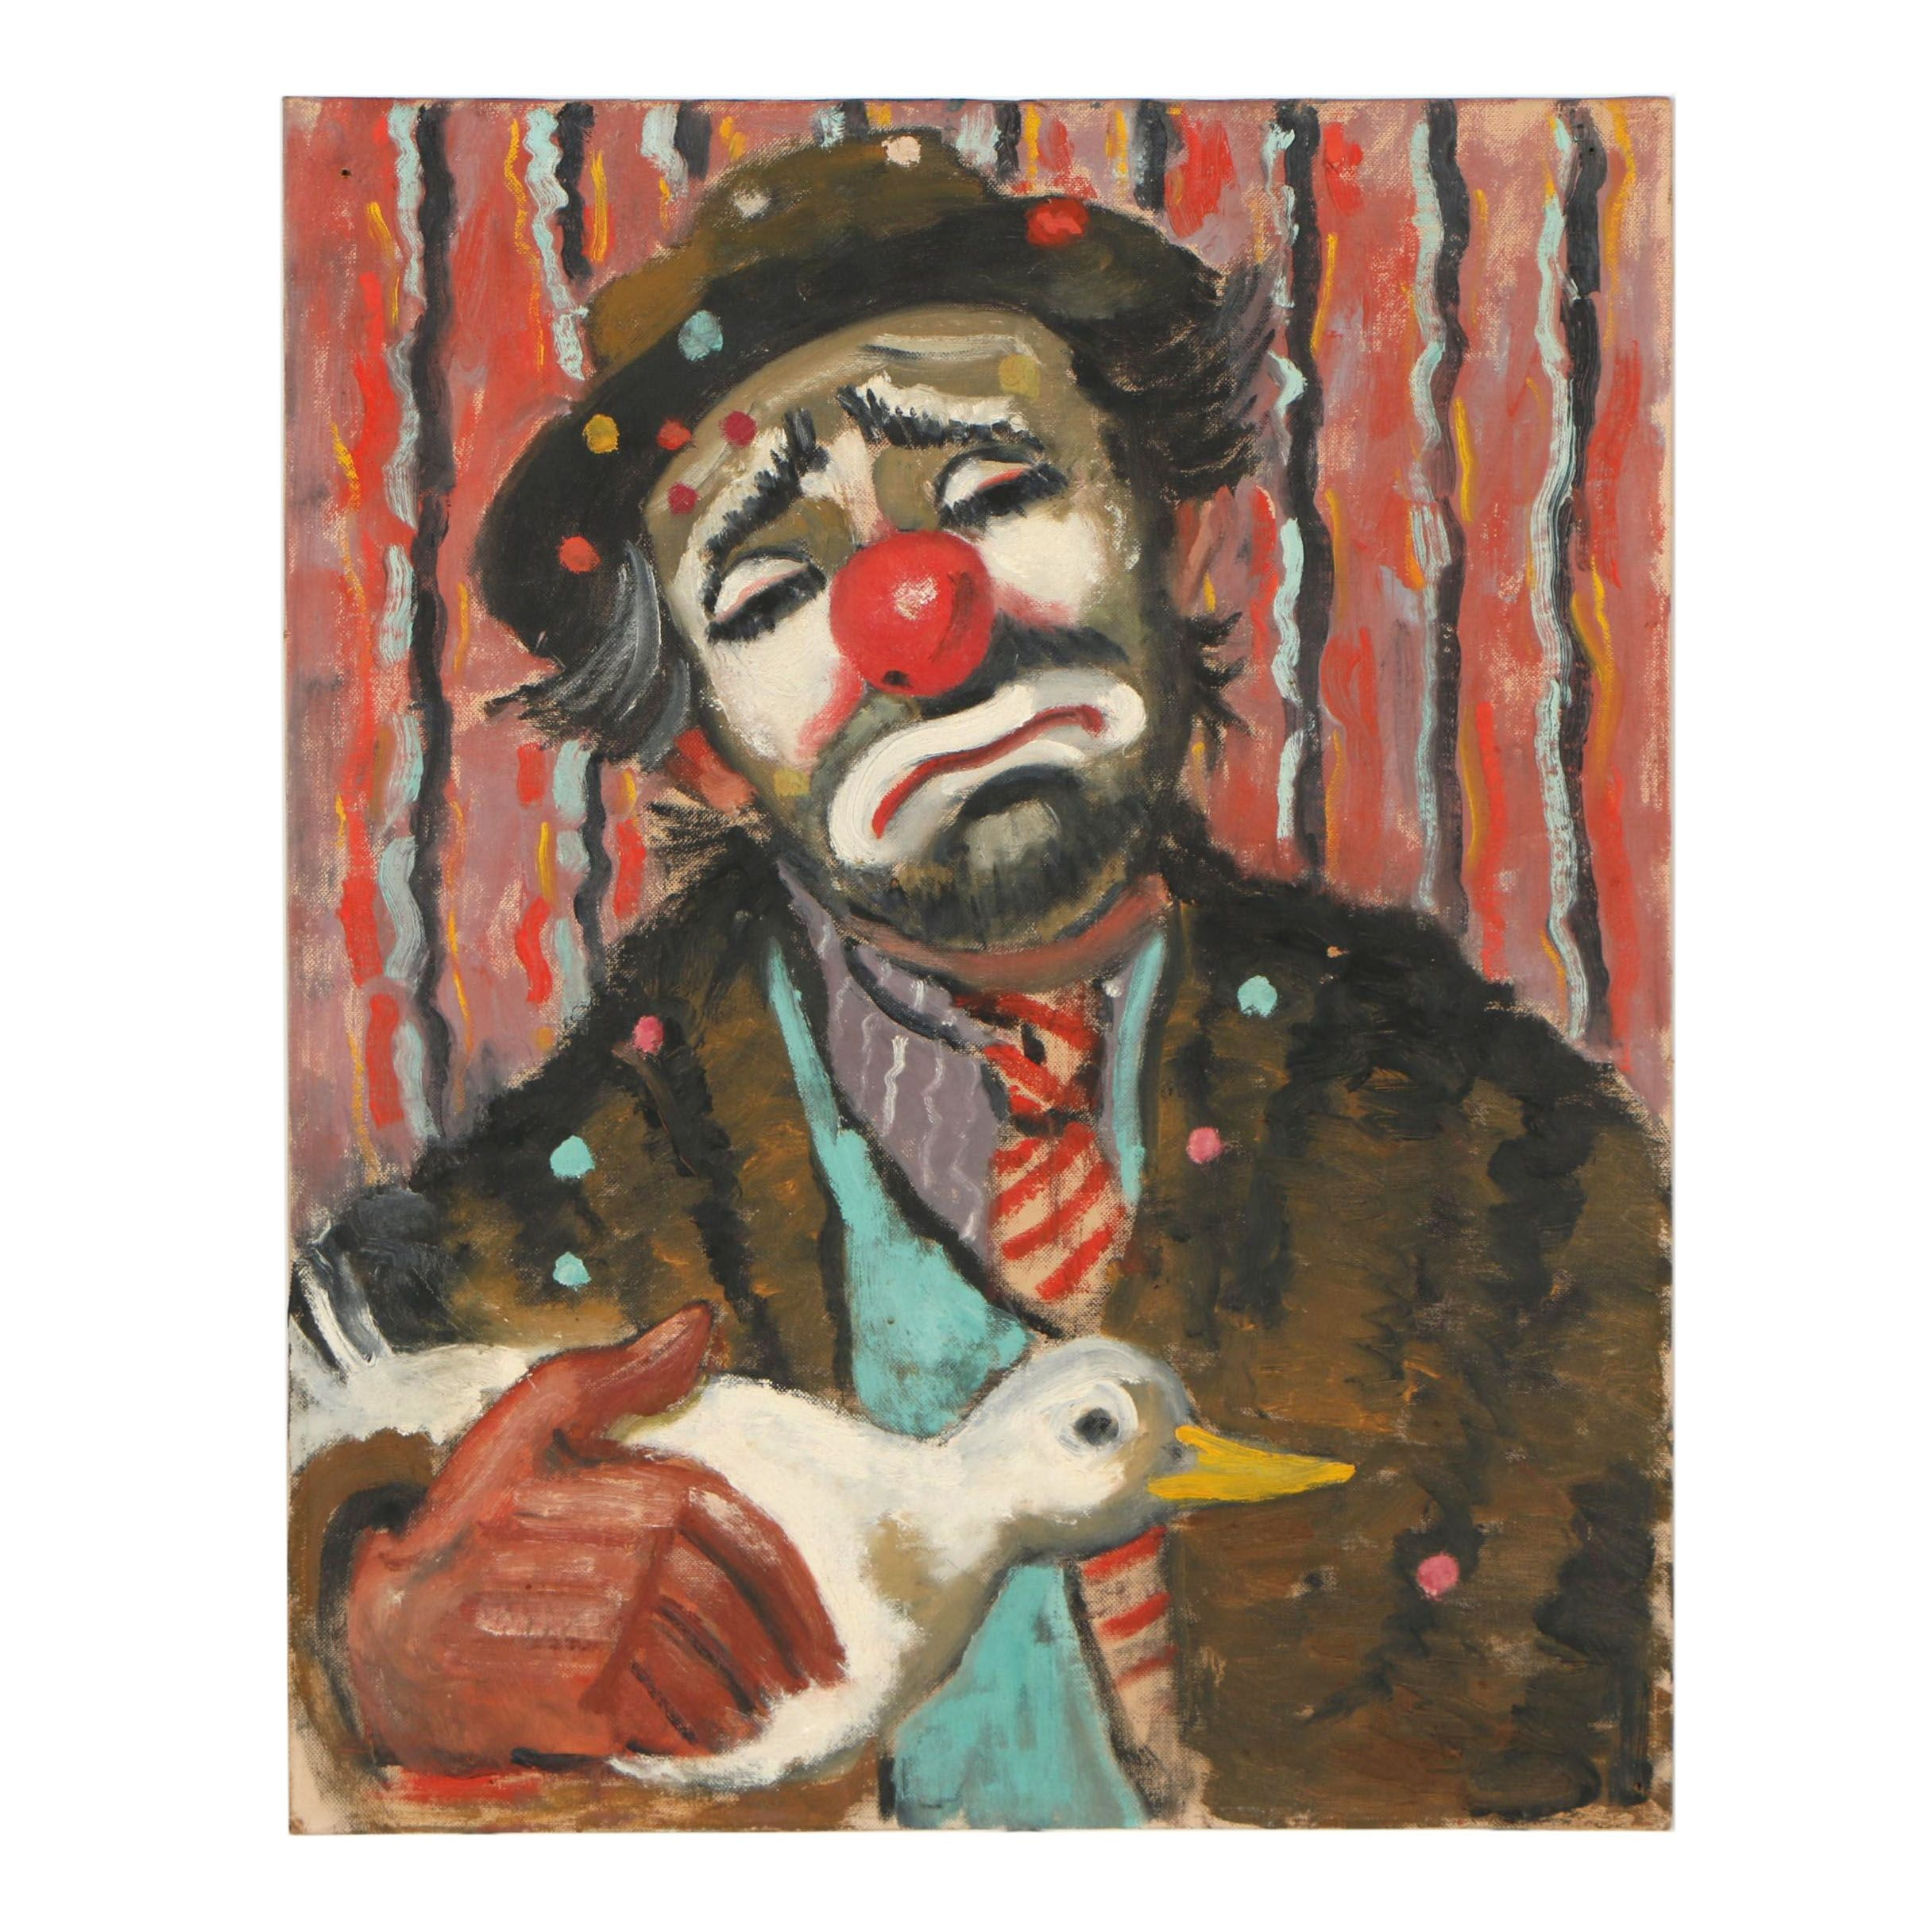 Mid 20th Century Oil Painting of a Clown